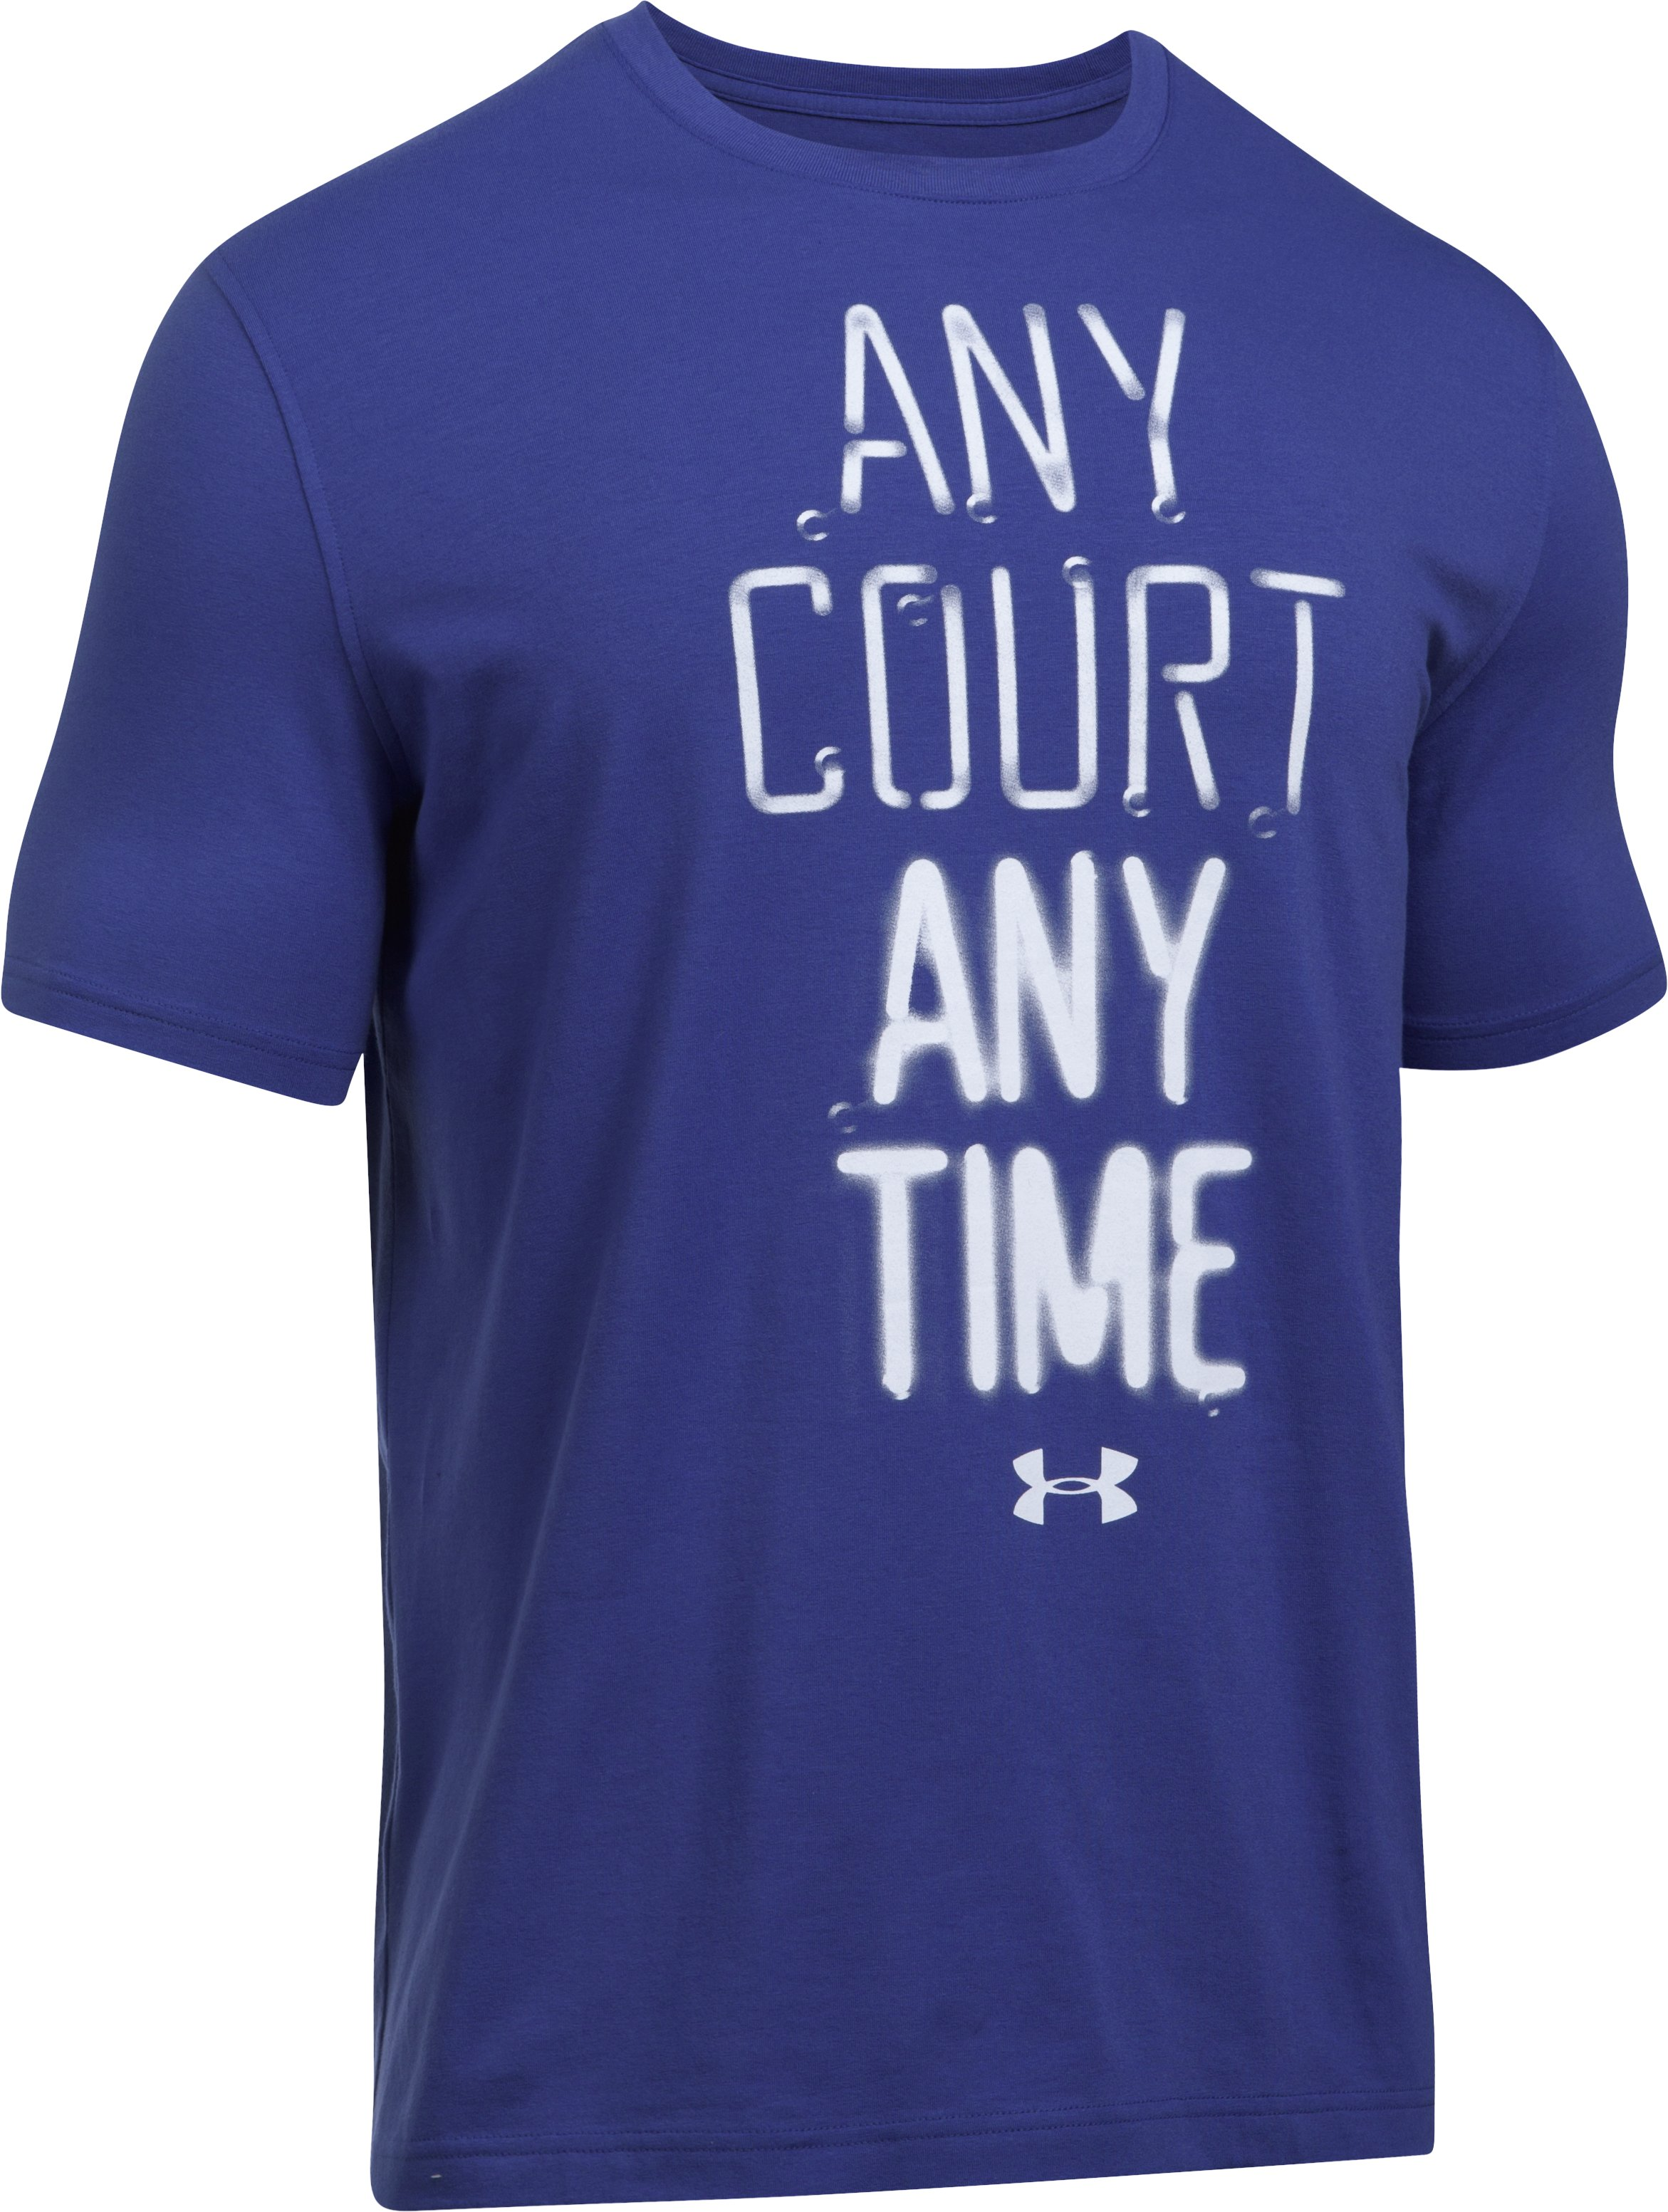 Men's UA Any Court Any Time T-Shirt, Pluto